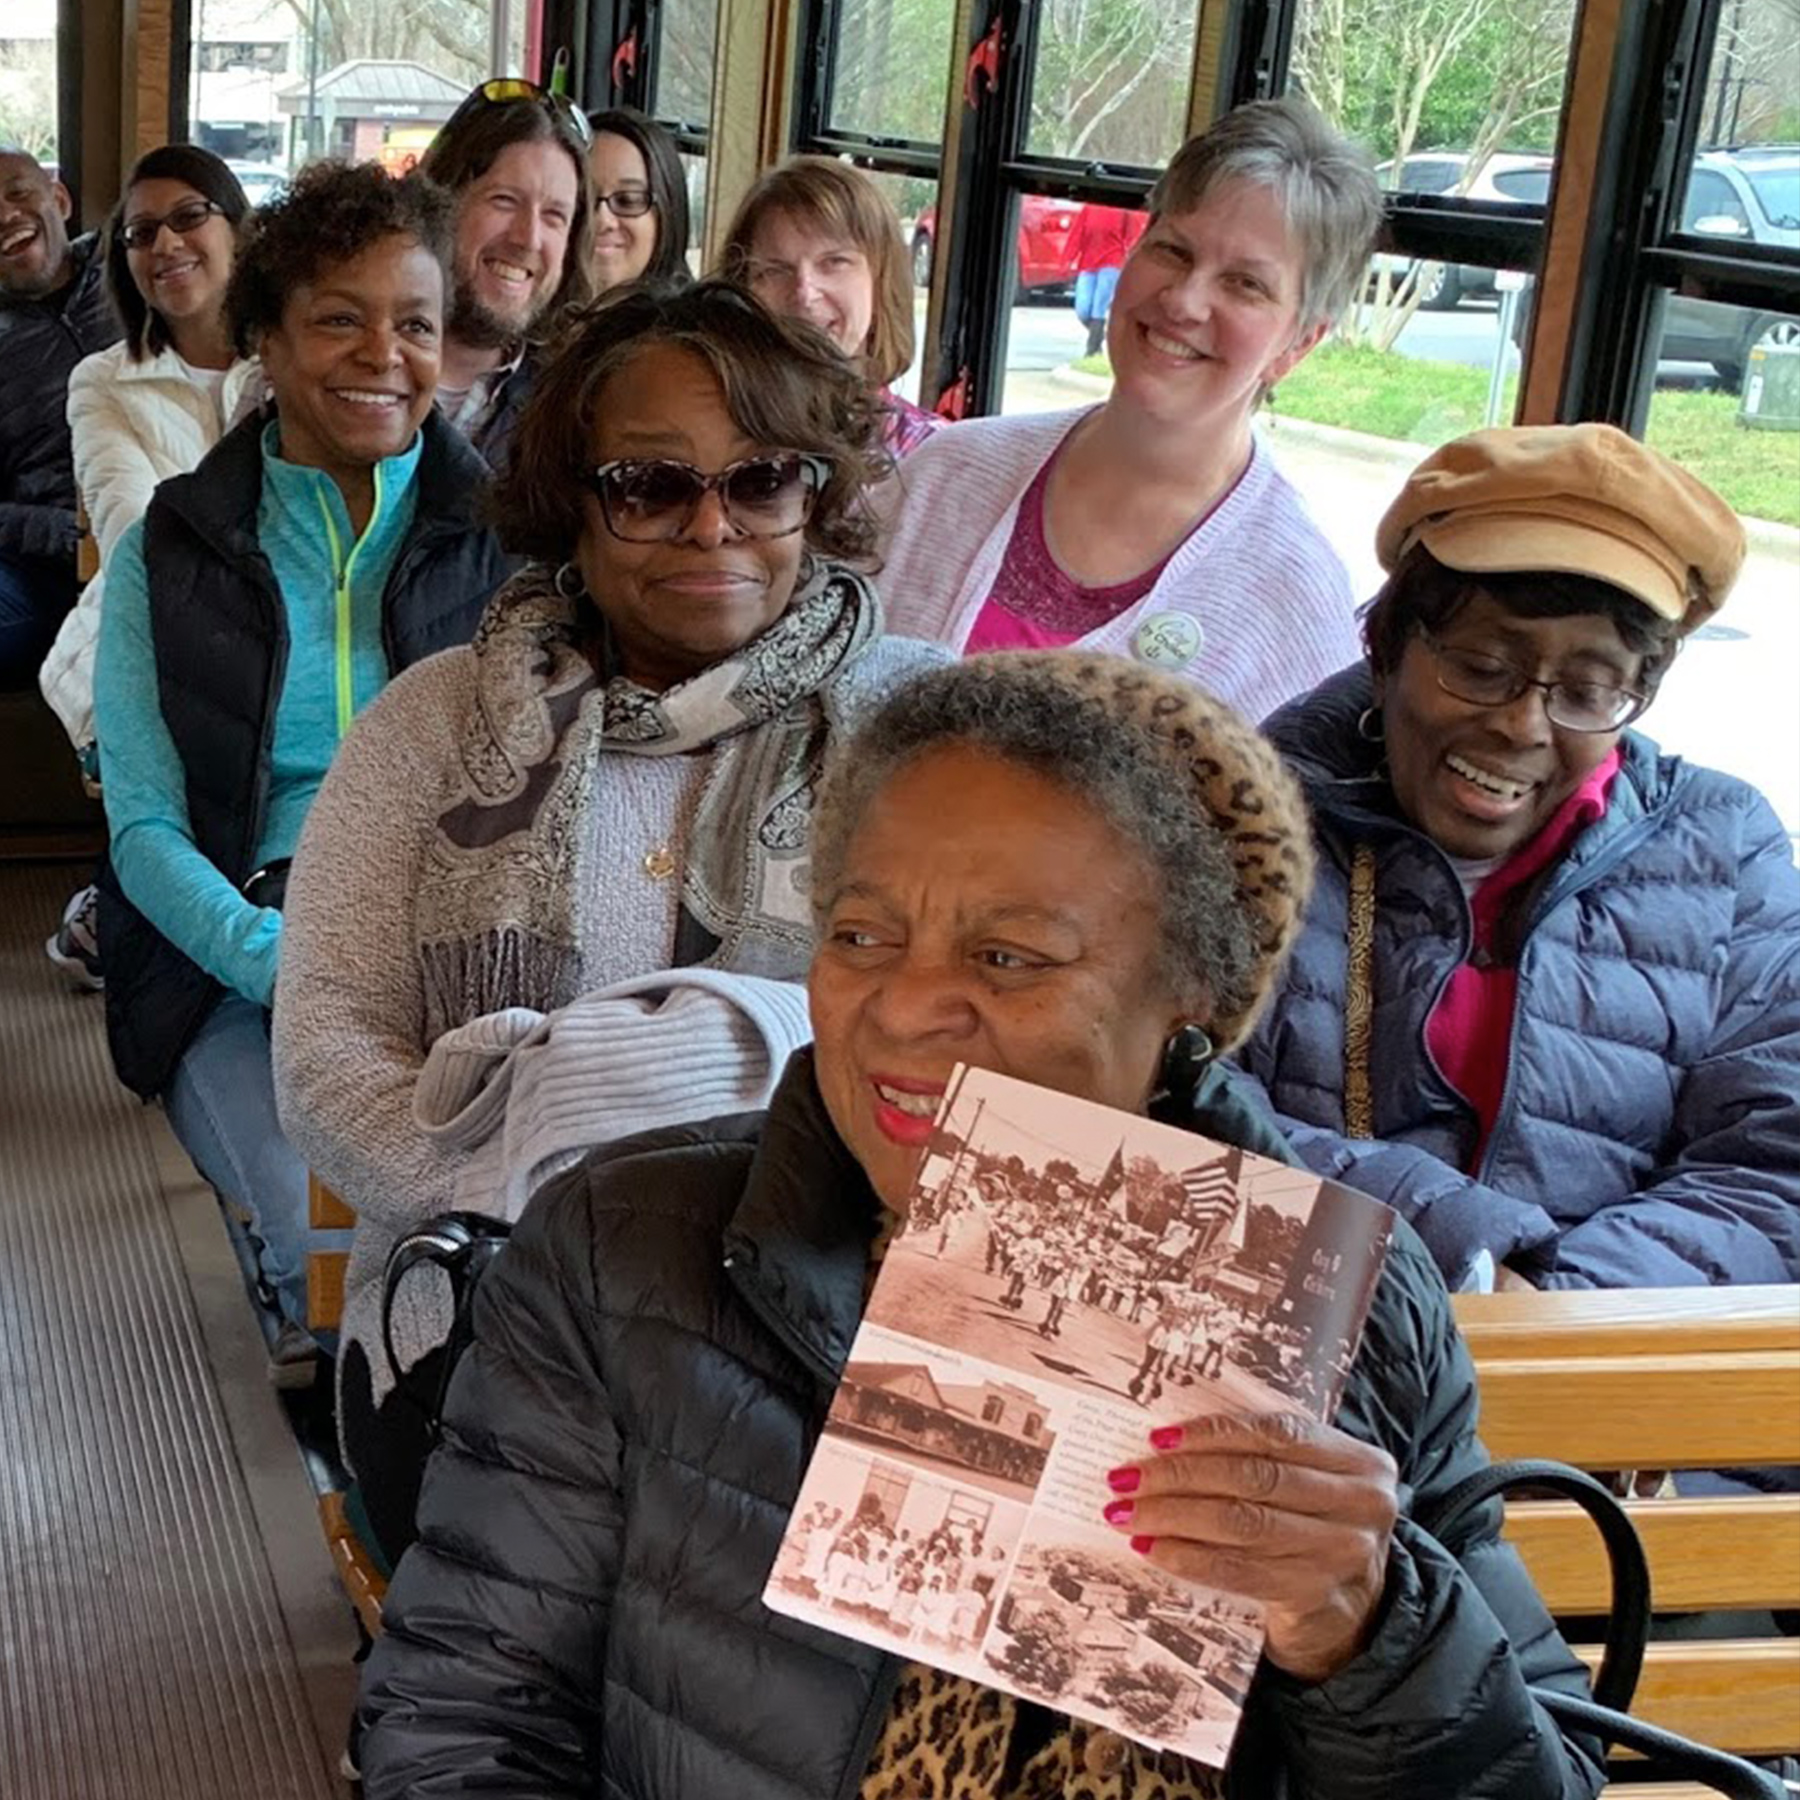 Photo of an African American woman sitting on a tour bus holding a pamphlet.